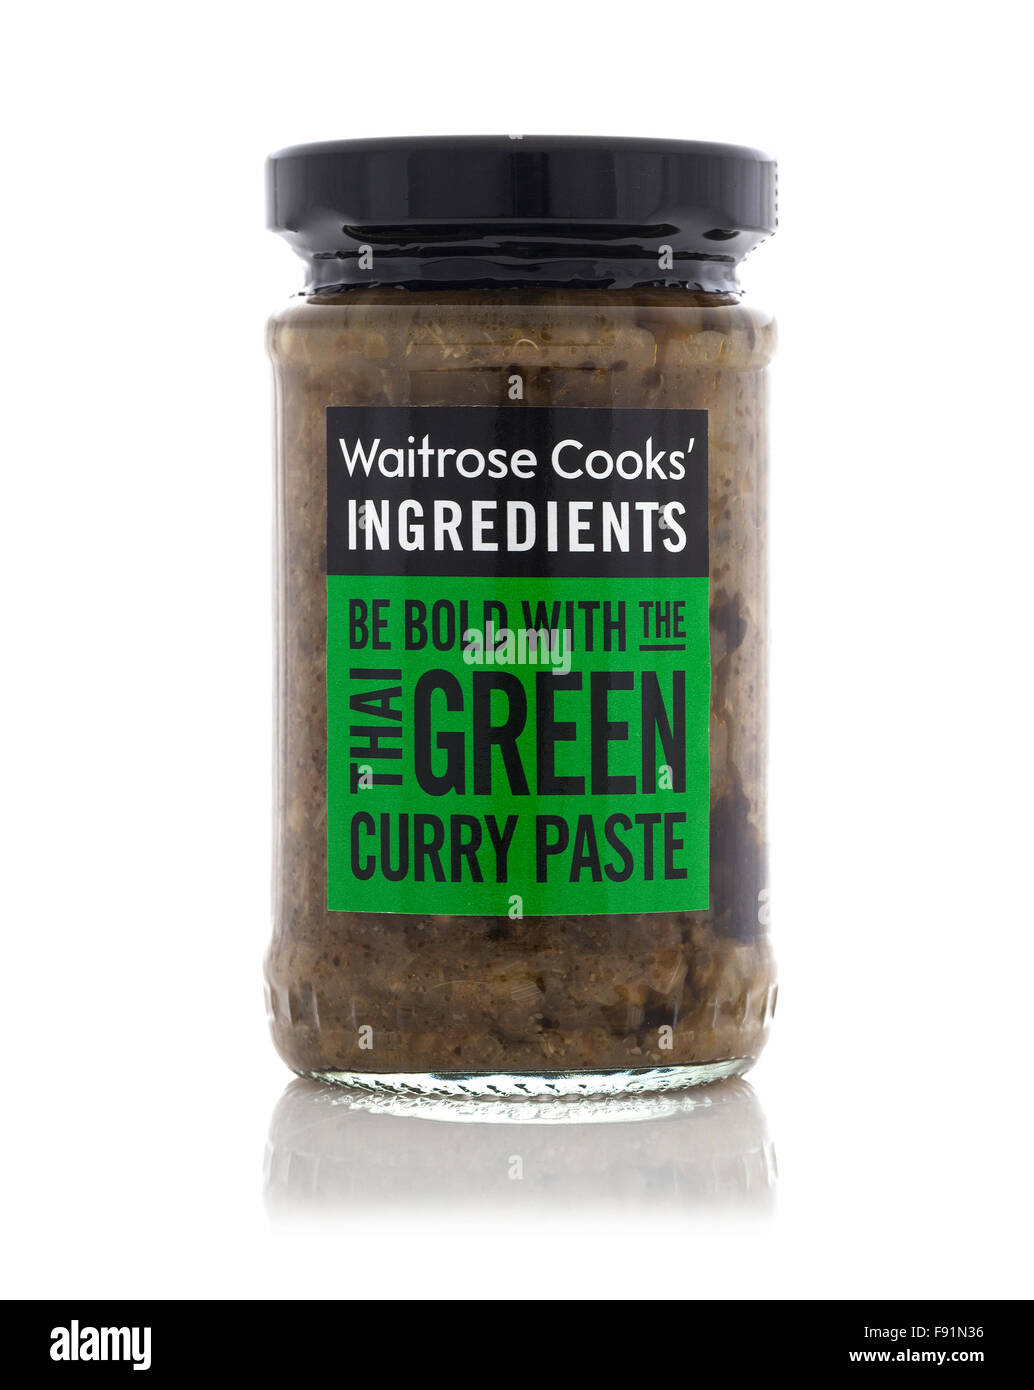 Jar of Waitrose Cooks Ingredients Thai Green Curry Paste on a White Background - Stock Image